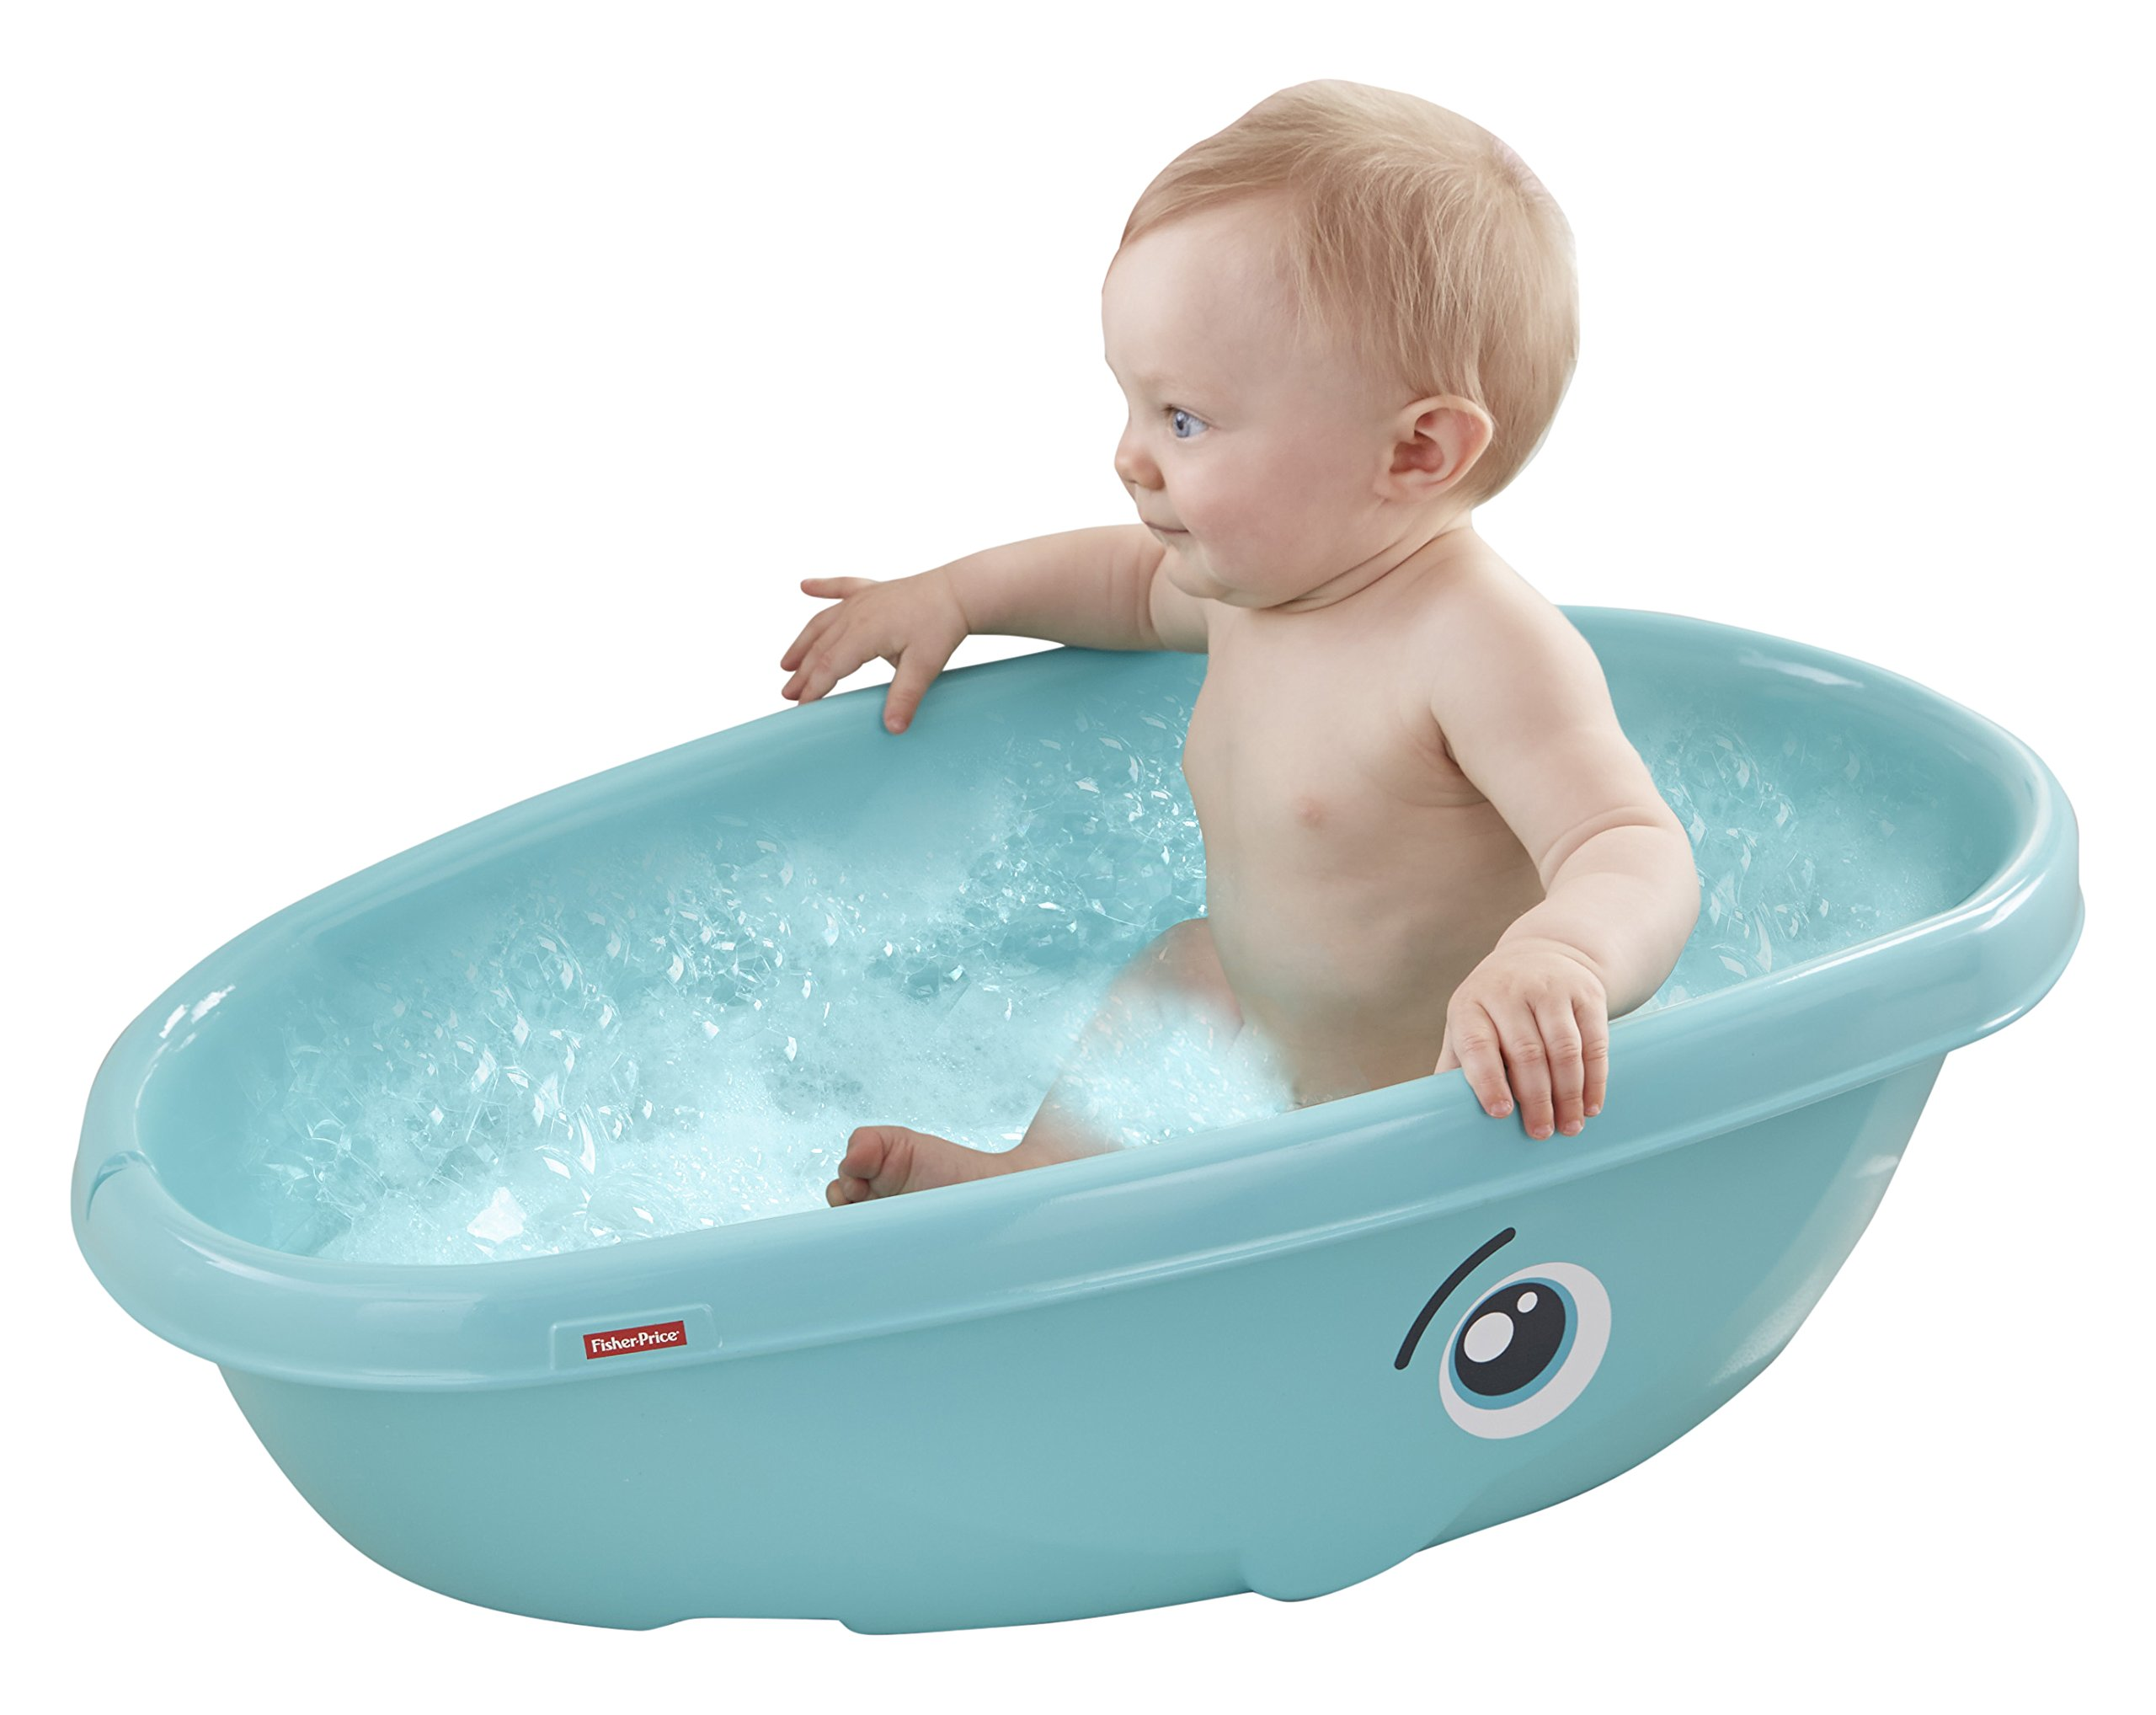 Fisher Price Whale Baby Bathtub Kids Toddler Newborn Shower Bath Safety Seat Tub | eBay